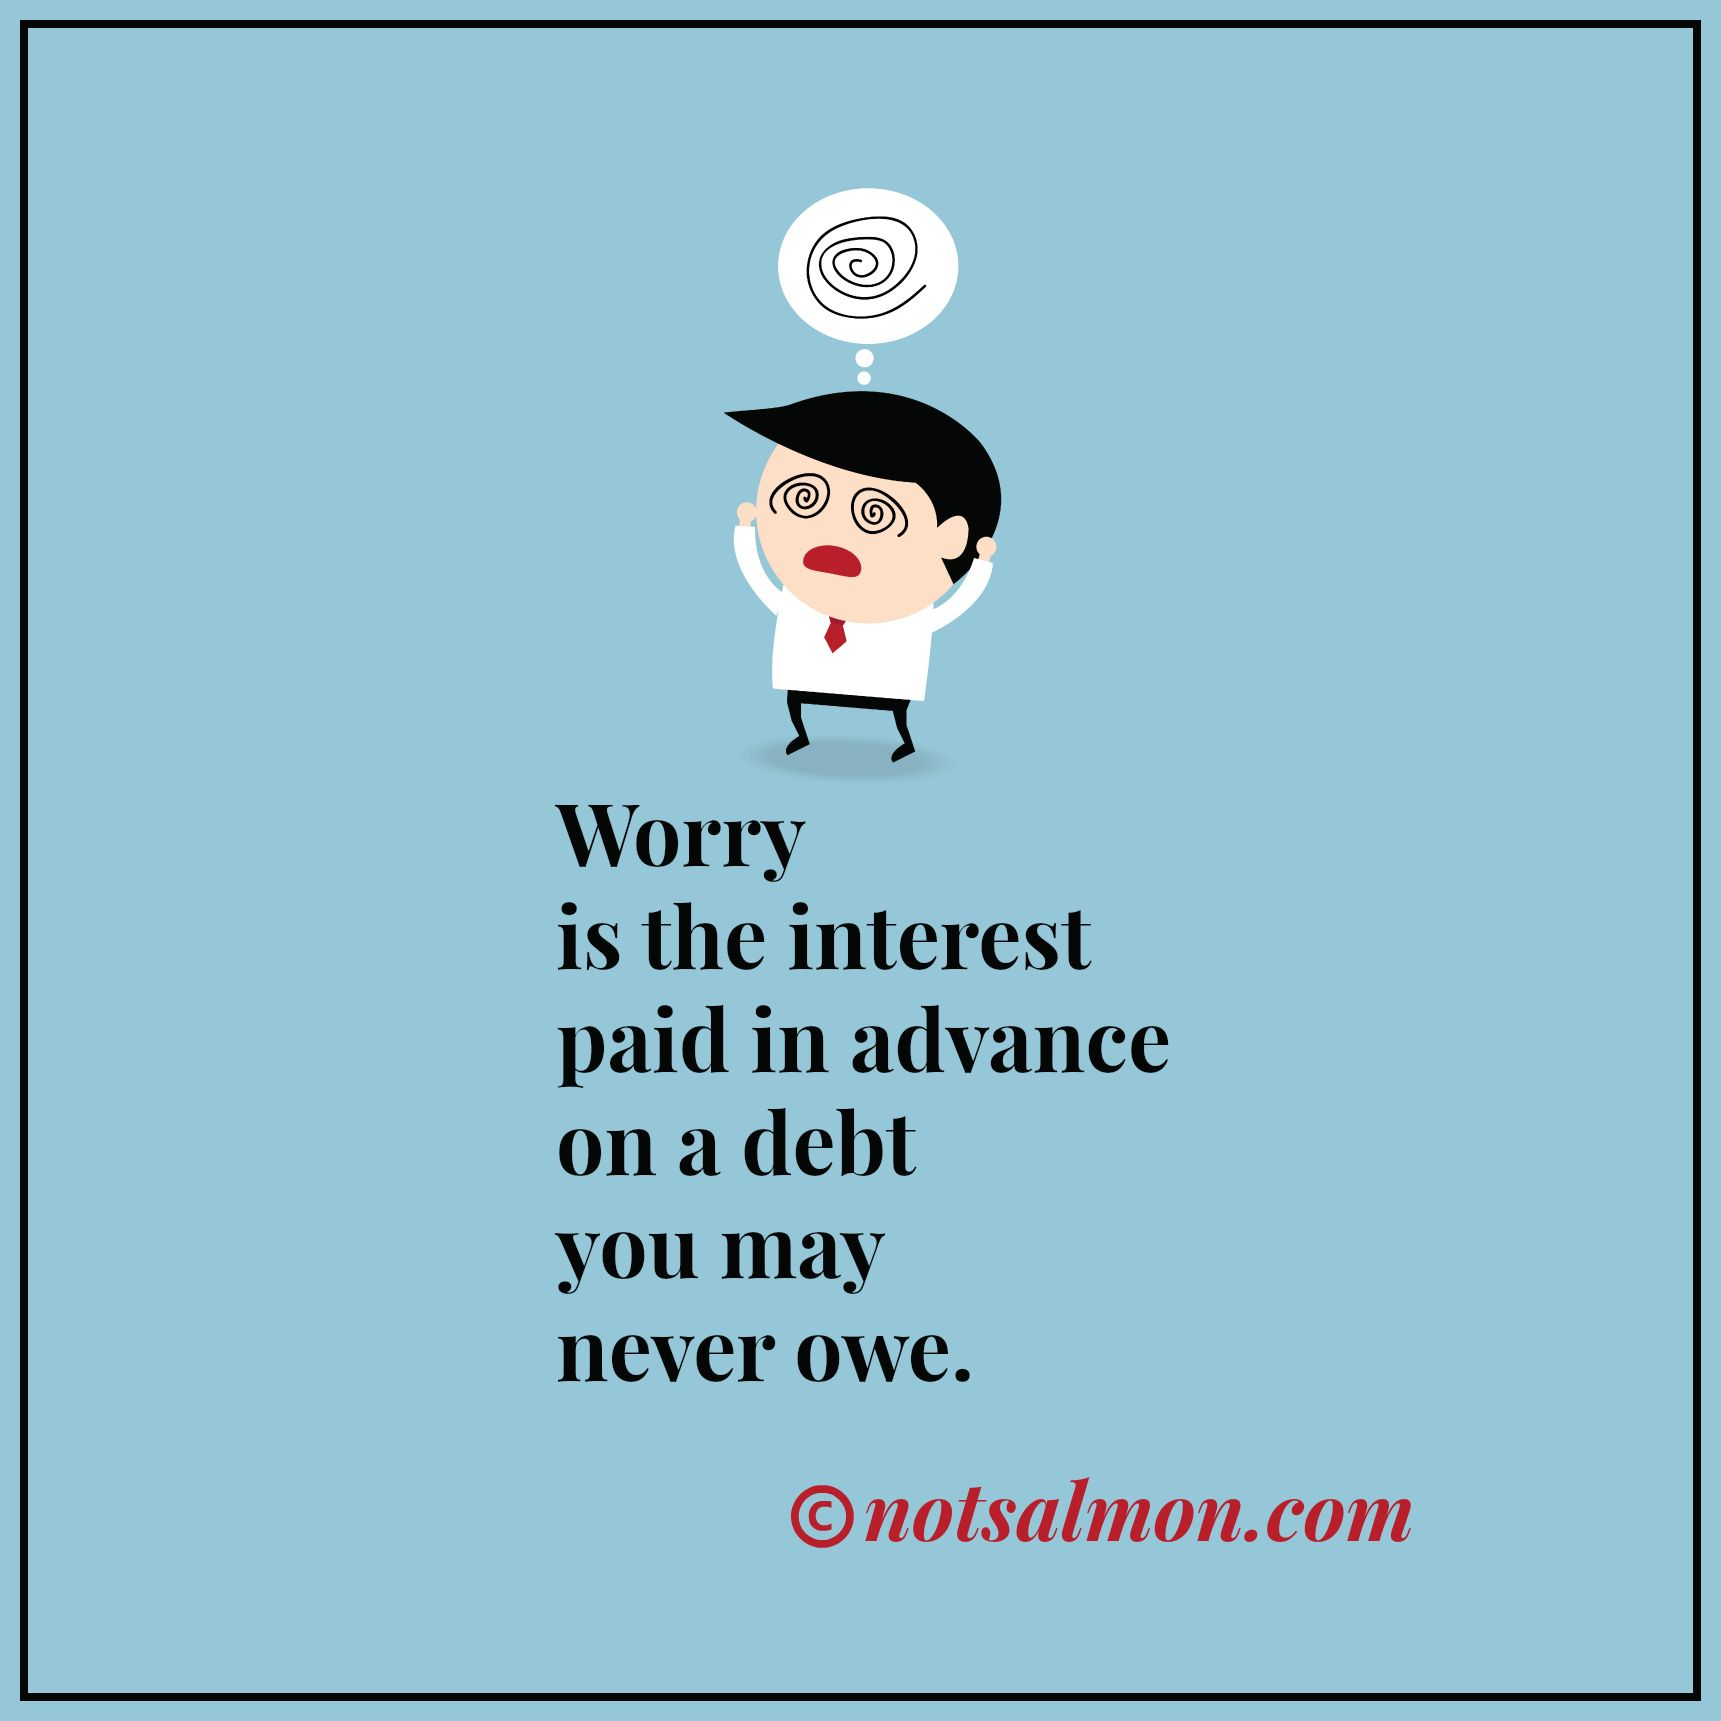 Worry is the interest paid in advance on a debt you may never owe. @notsalmon